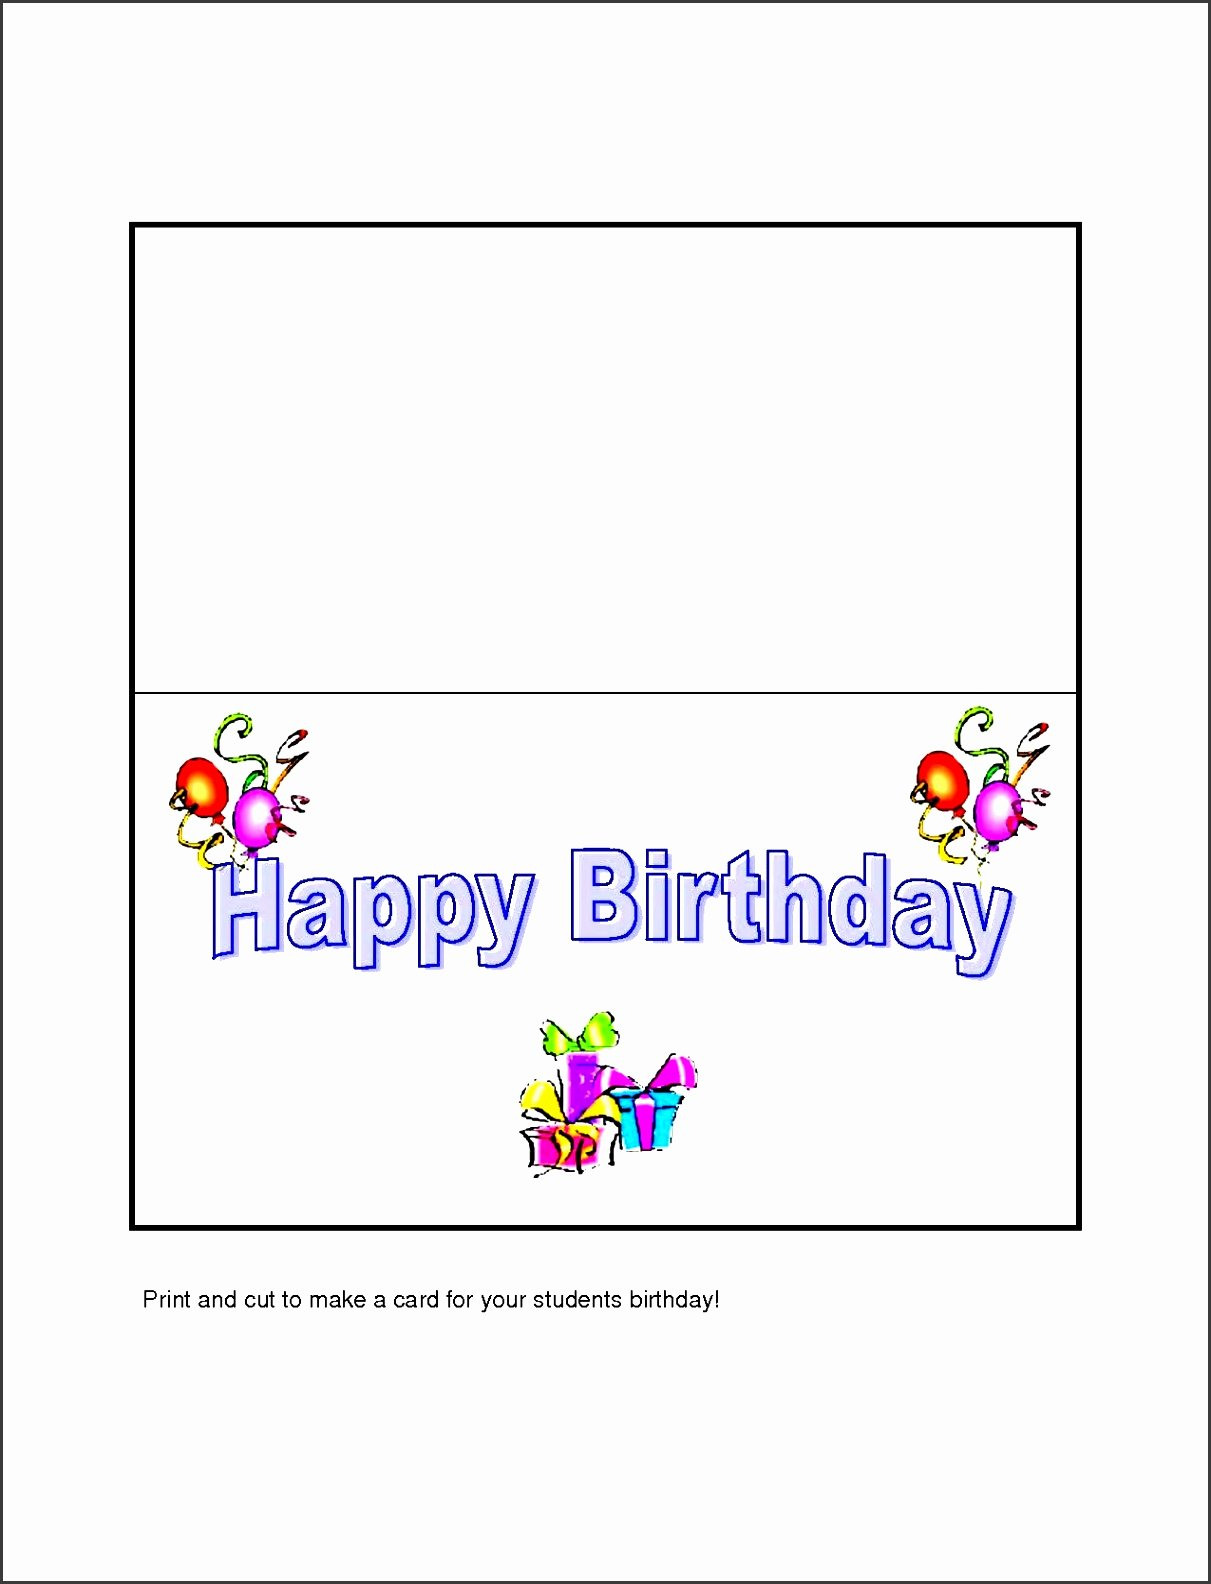 Birthday Card Template Word Inspirational 10 Free Microsoft Word Greeting Card Templates Sampletemplatess Sampletemplatess